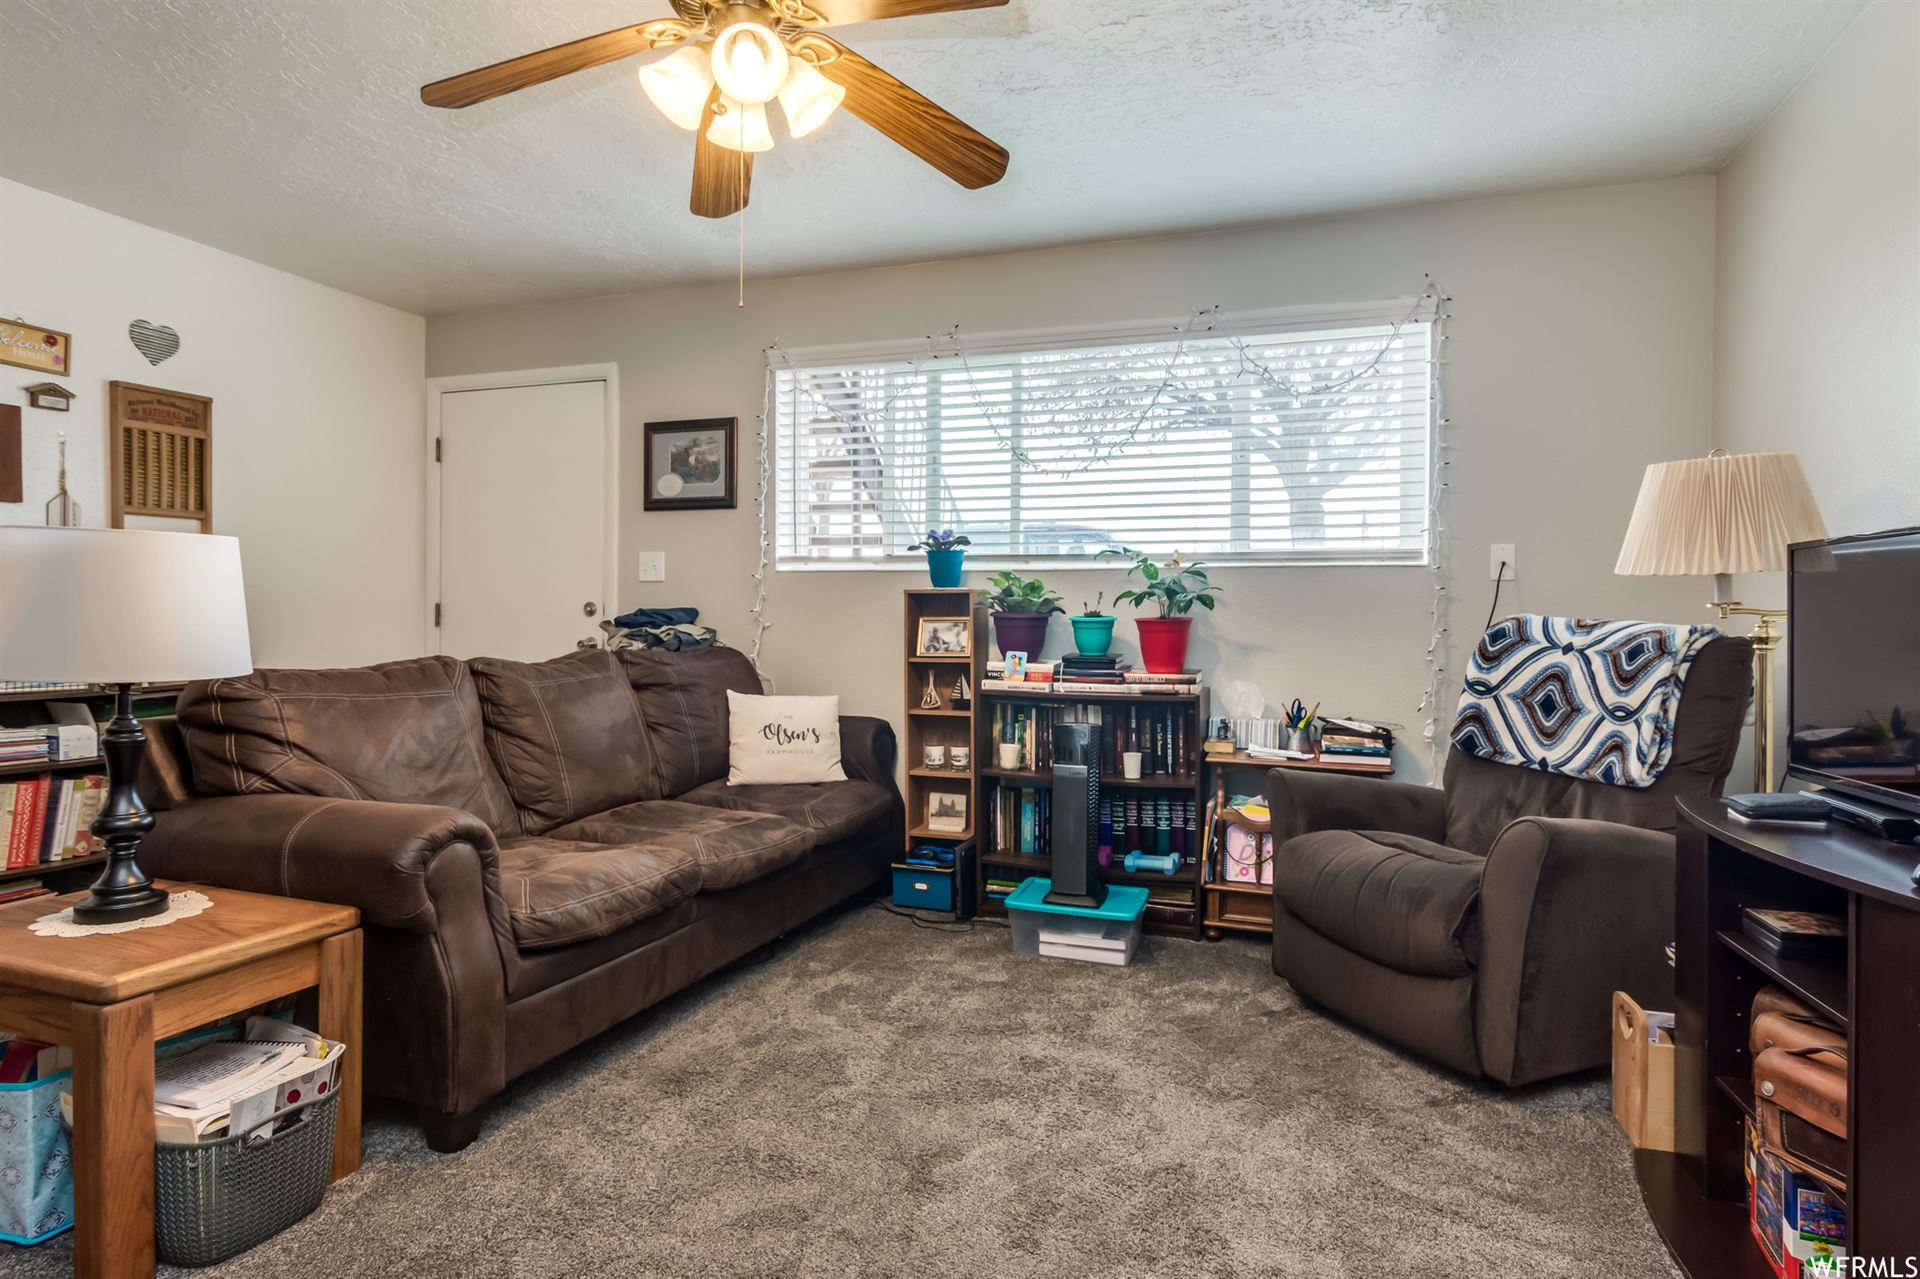 Photo of 785 S 100 E, Springville, UT 84663 (MLS # 1731178)